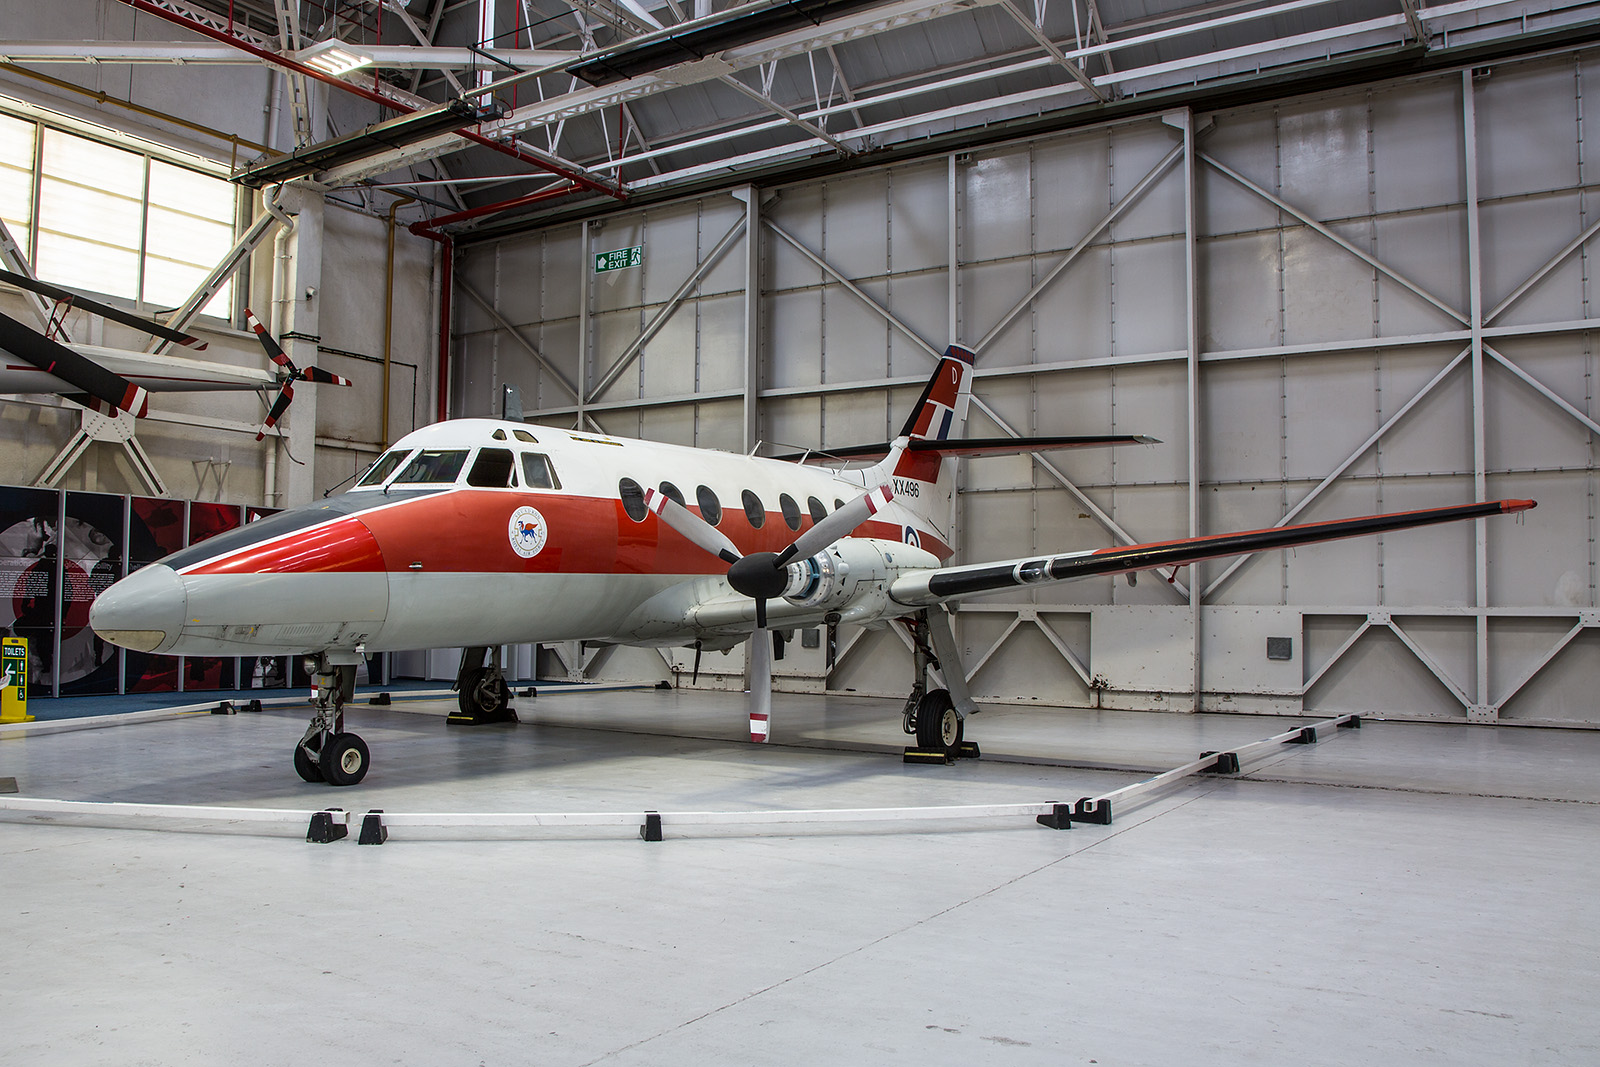 Die BAe Jetstream 31 der Royal Air Force